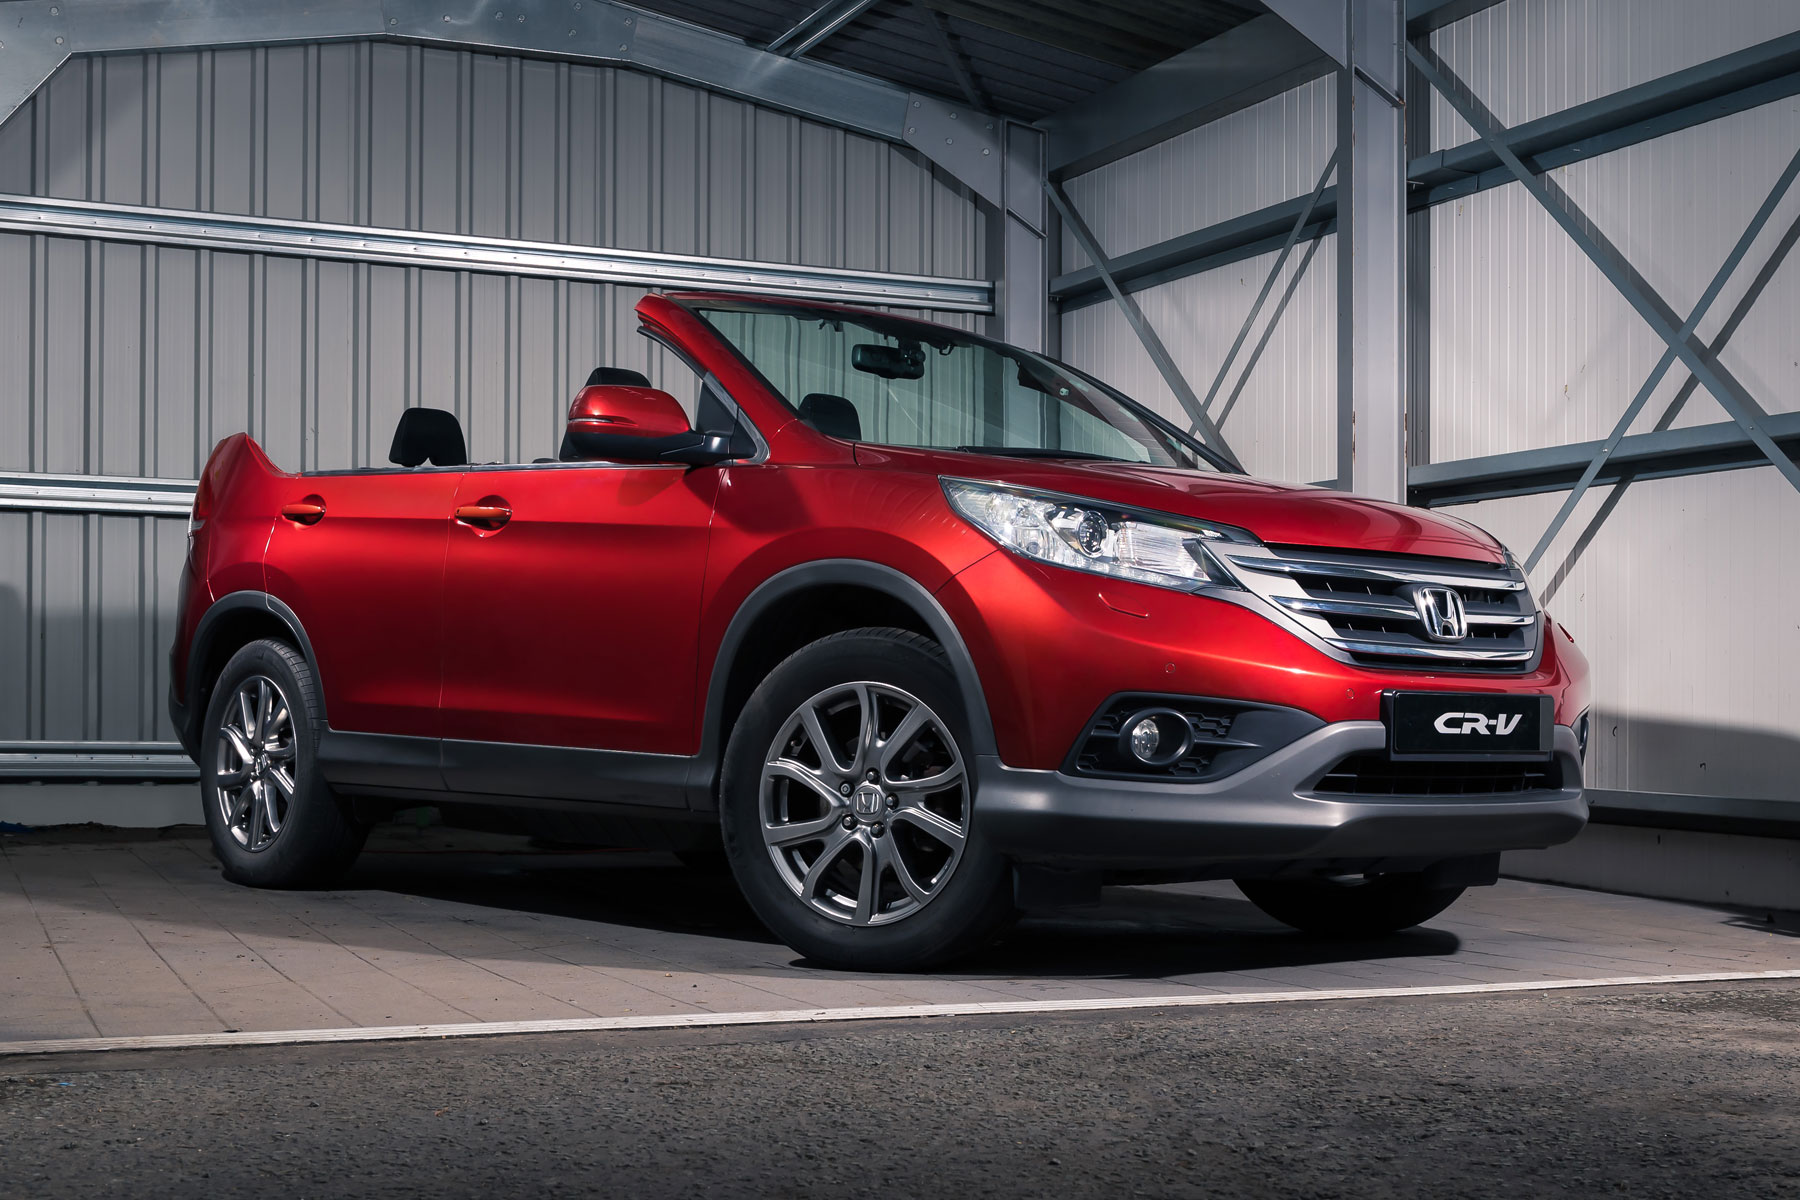 honda cr v roadster is april fools 39 gold motoring research. Black Bedroom Furniture Sets. Home Design Ideas